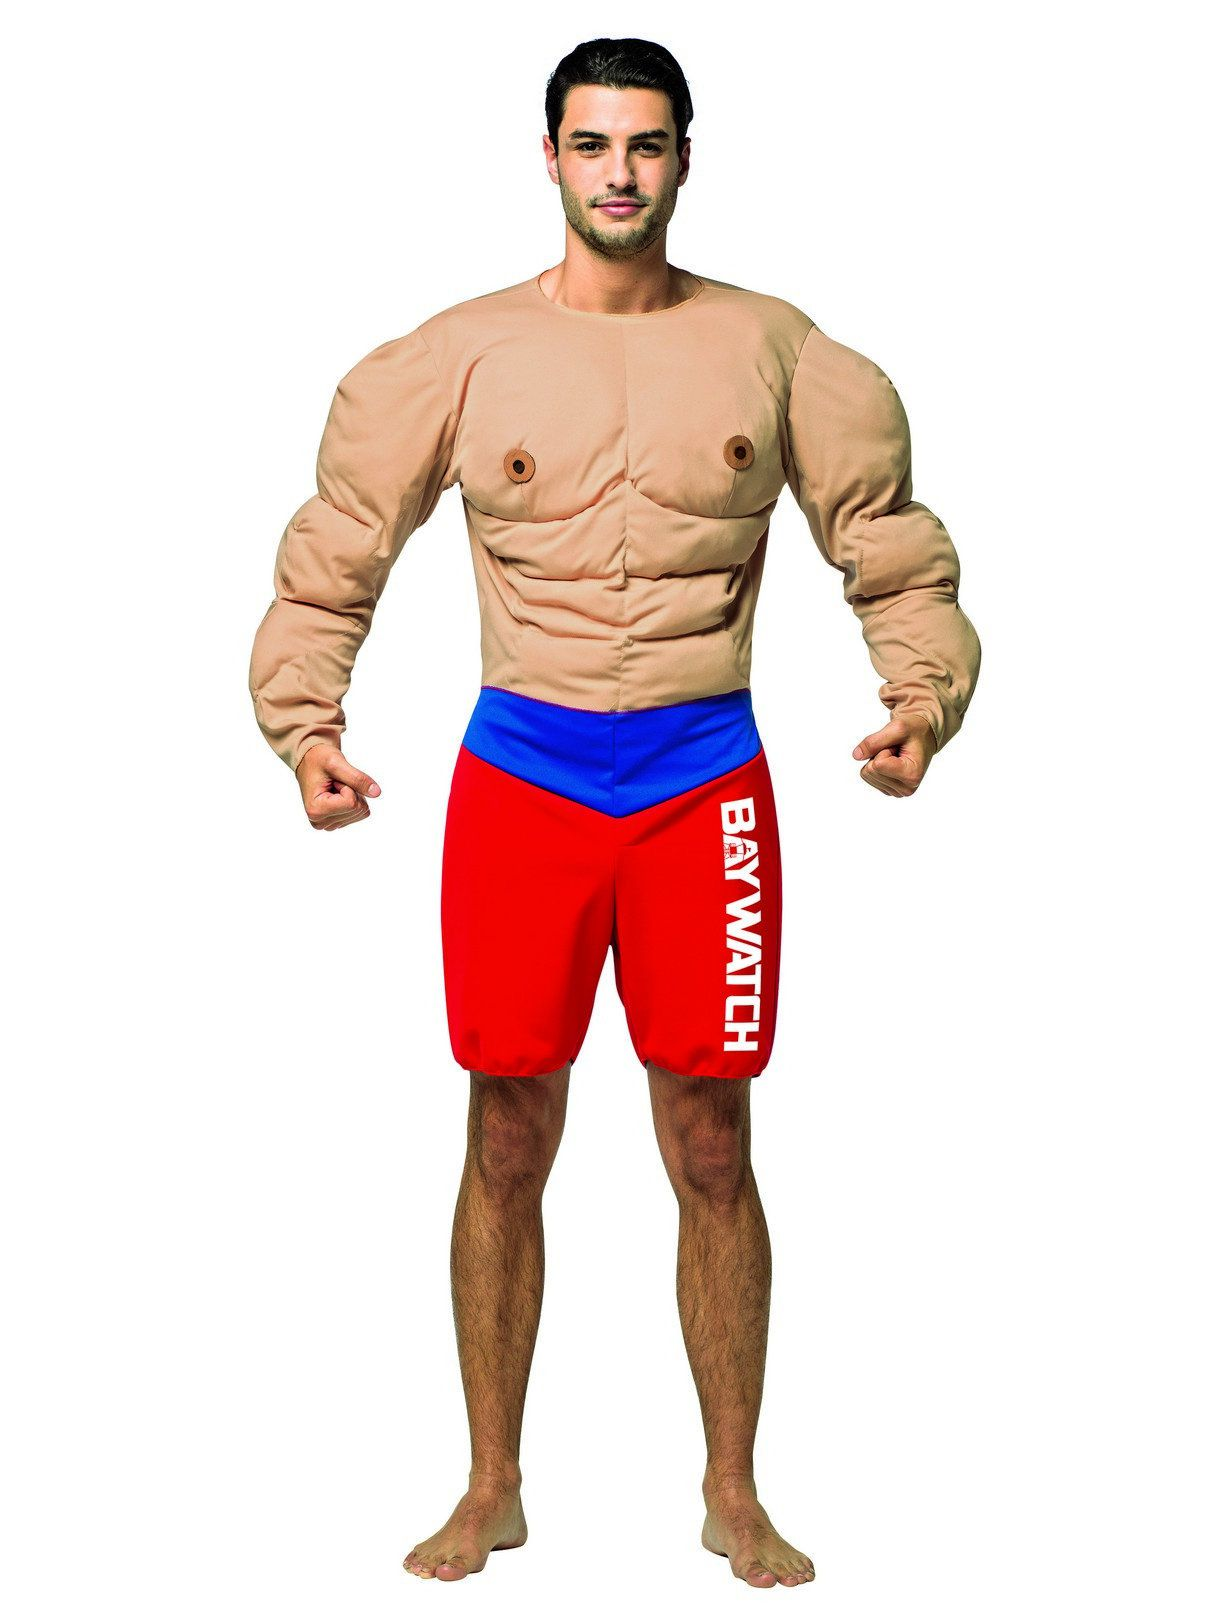 Baywatch Lifeguard Muscle Costume for Adults  sc 1 st  Wholesale Halloween Costumes & Baywatch Lifeguard Muscle Costume for Adults - Mens Costumes for ...